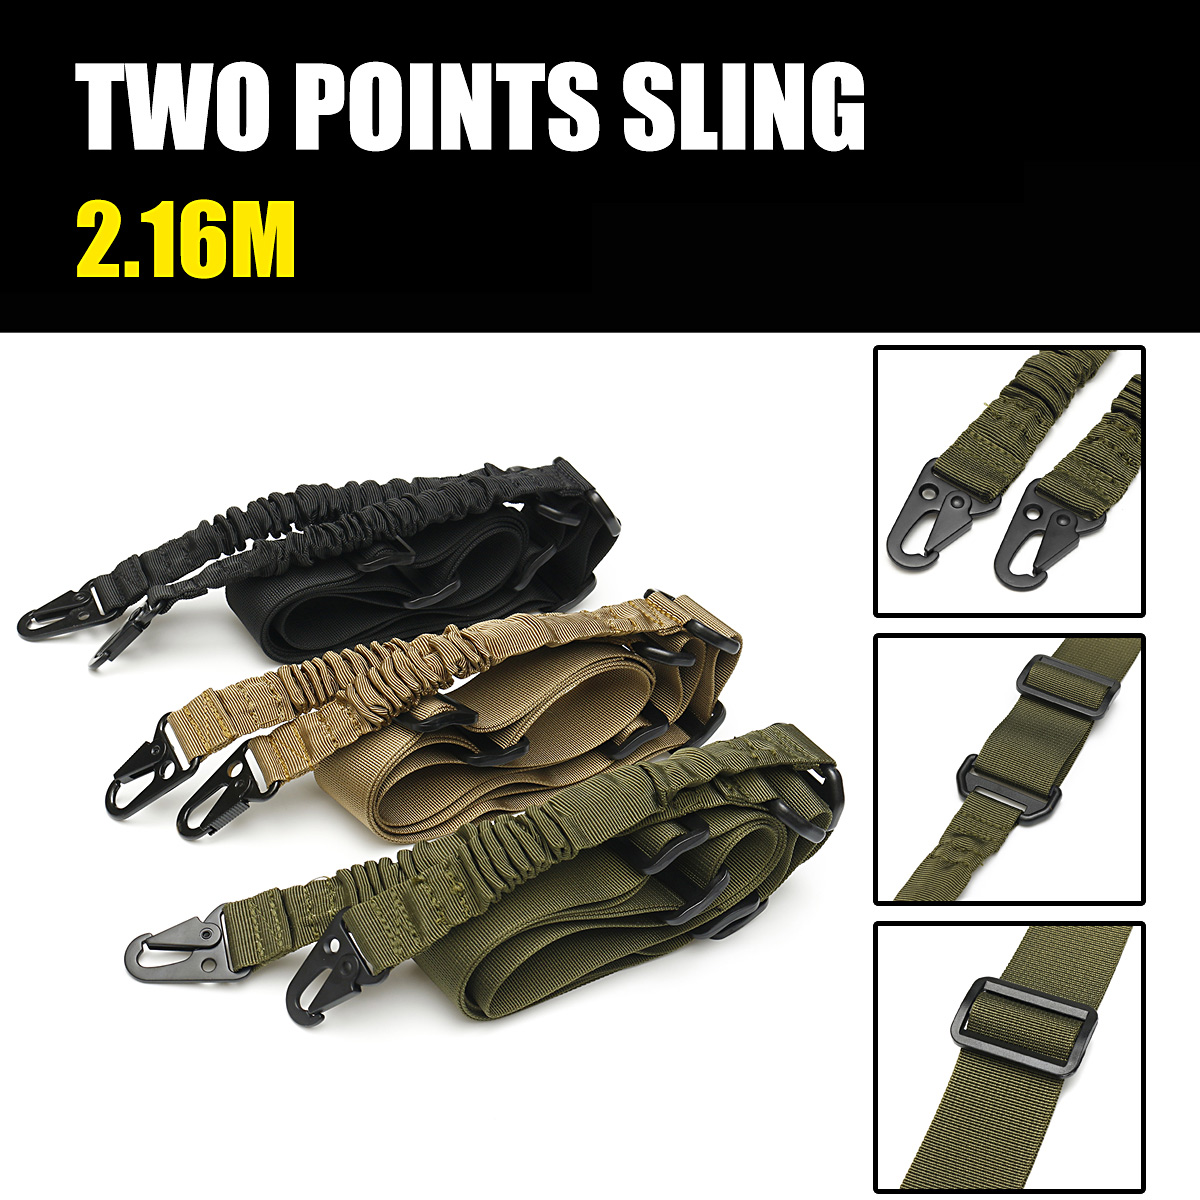 EDC 2 Point Sling Multi-Use Two Point Gun Sling String Clip Sling CS Tactics Gadget 2.16m